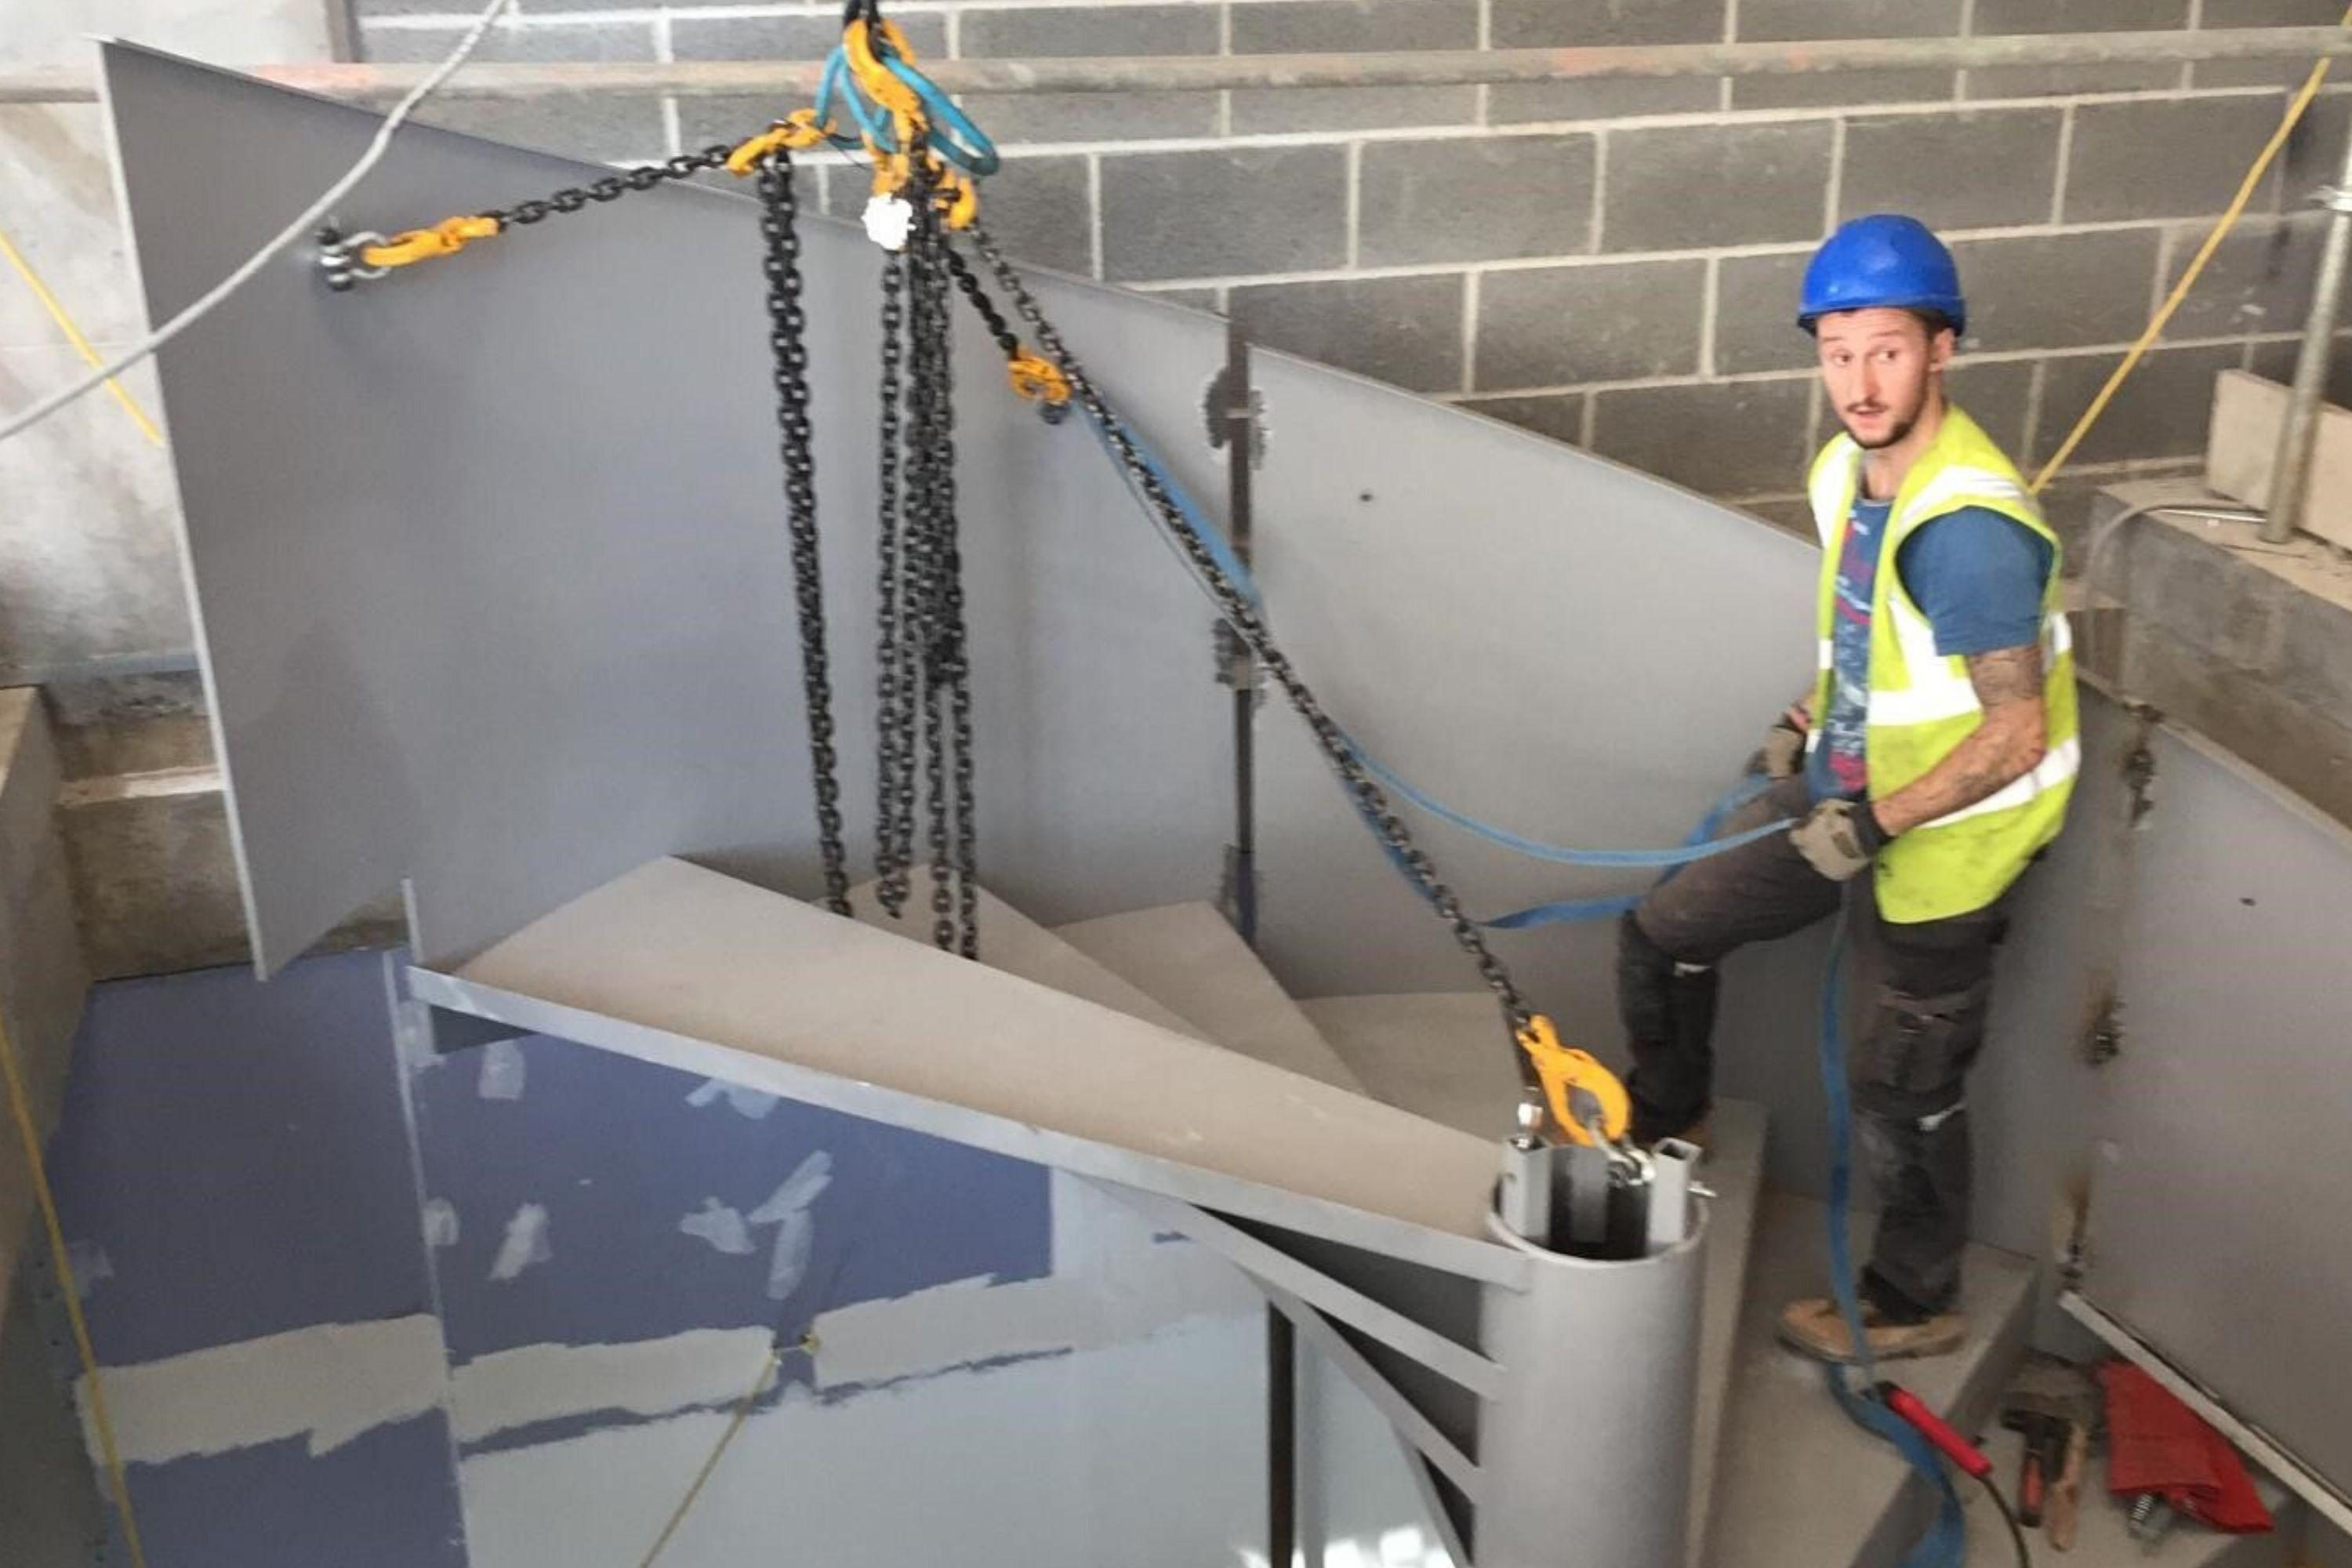 Fitter installing a stair